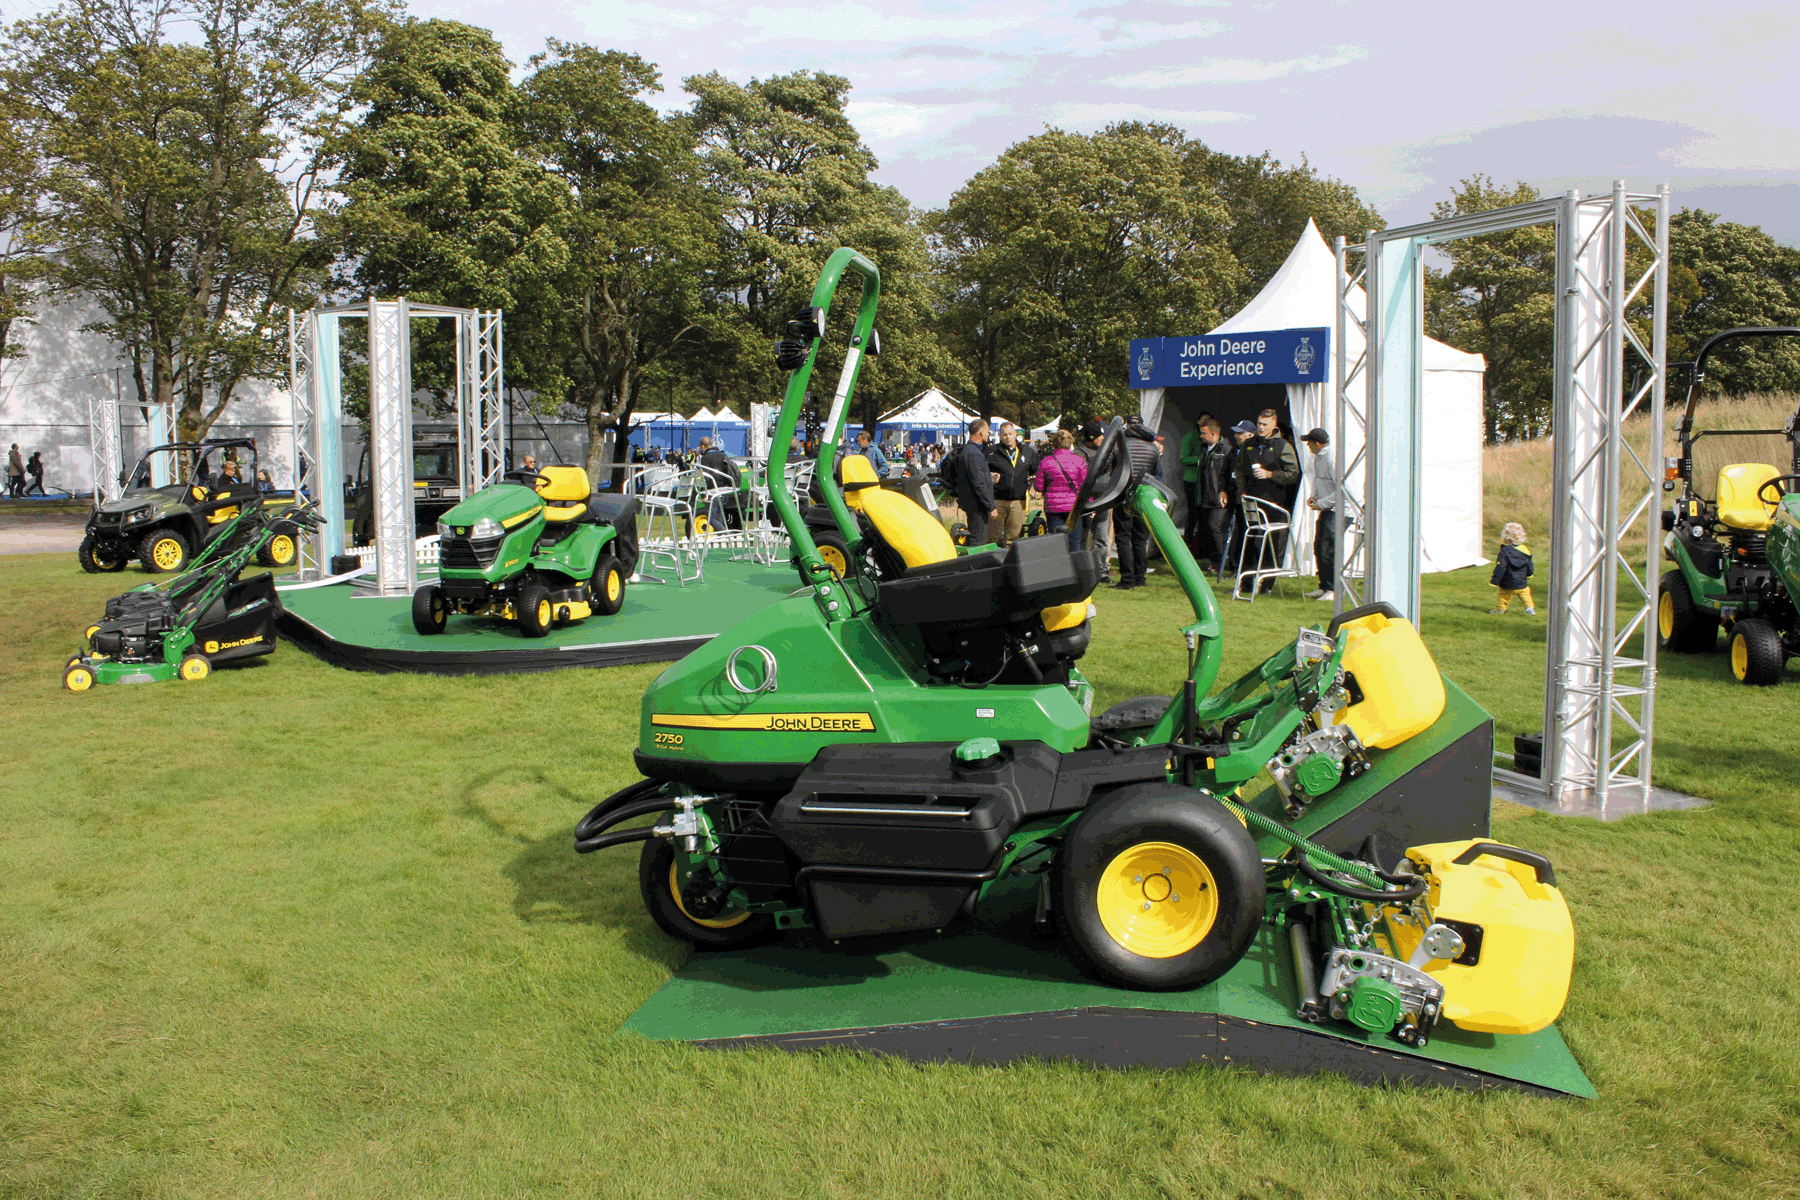 Decisions decisions - a turfgrass manager's role is to propose one or more capital expenditure projects Background